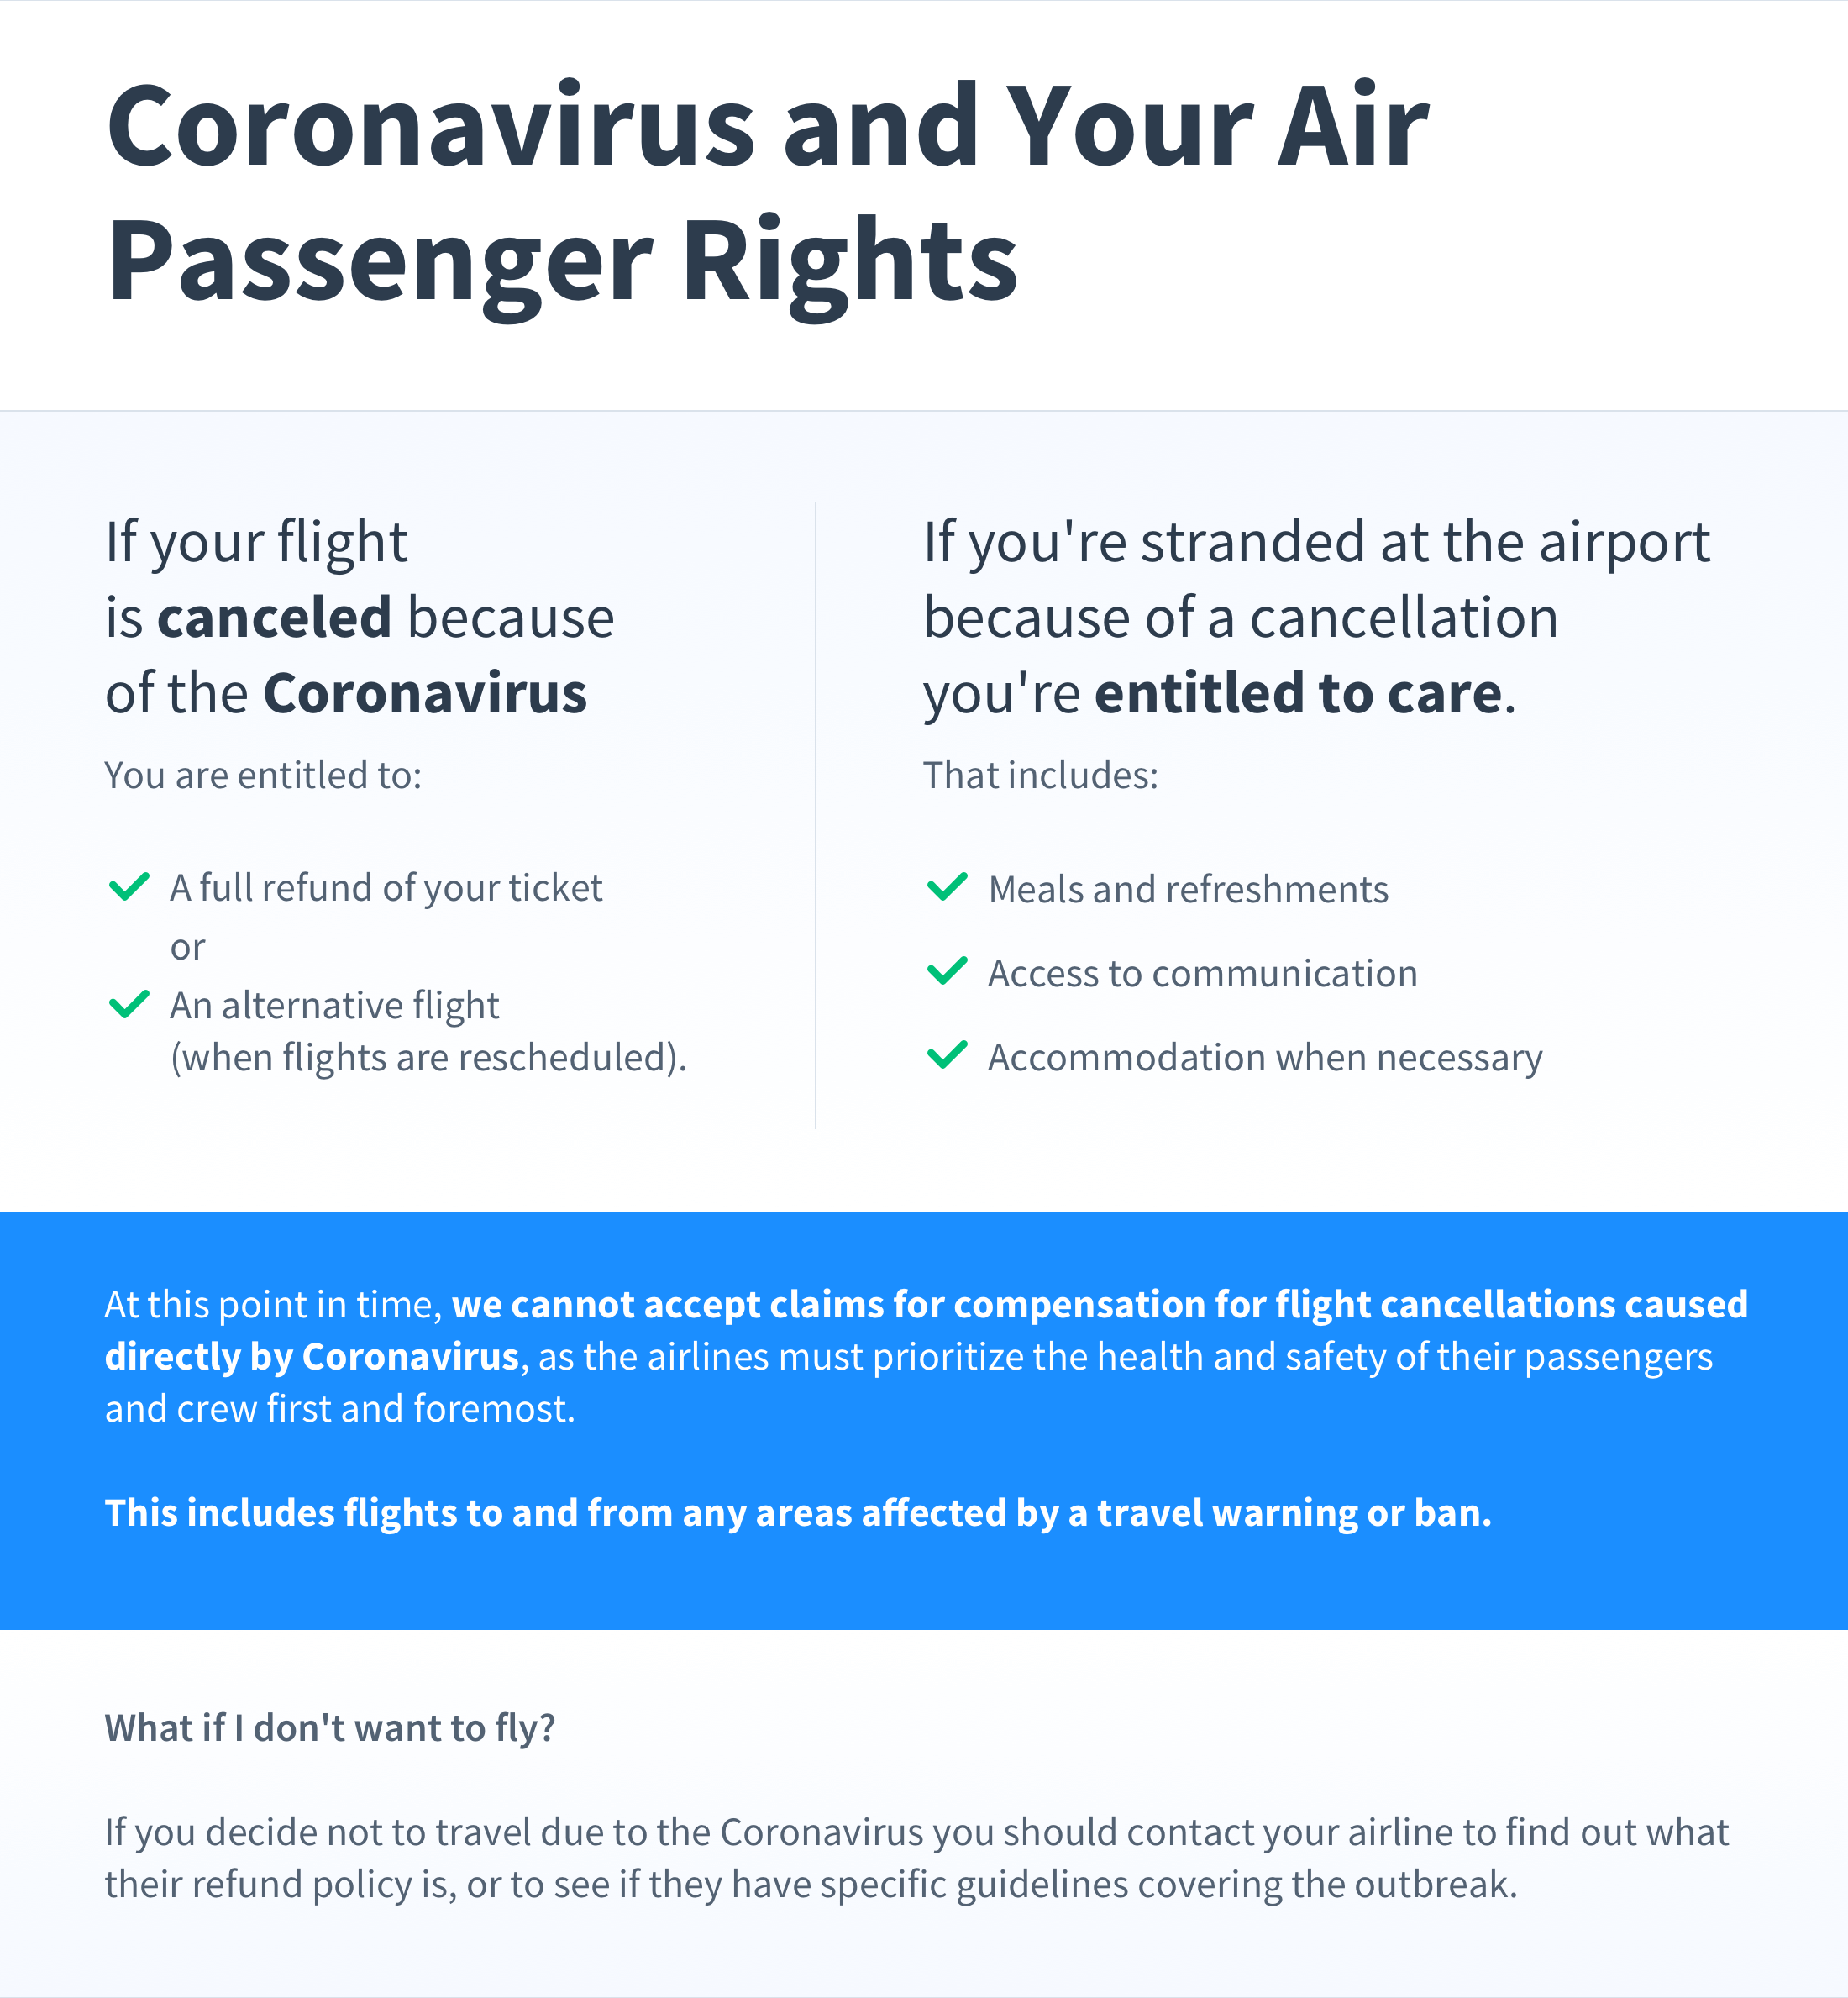 Coronavirus and Your Air Passenger Rights